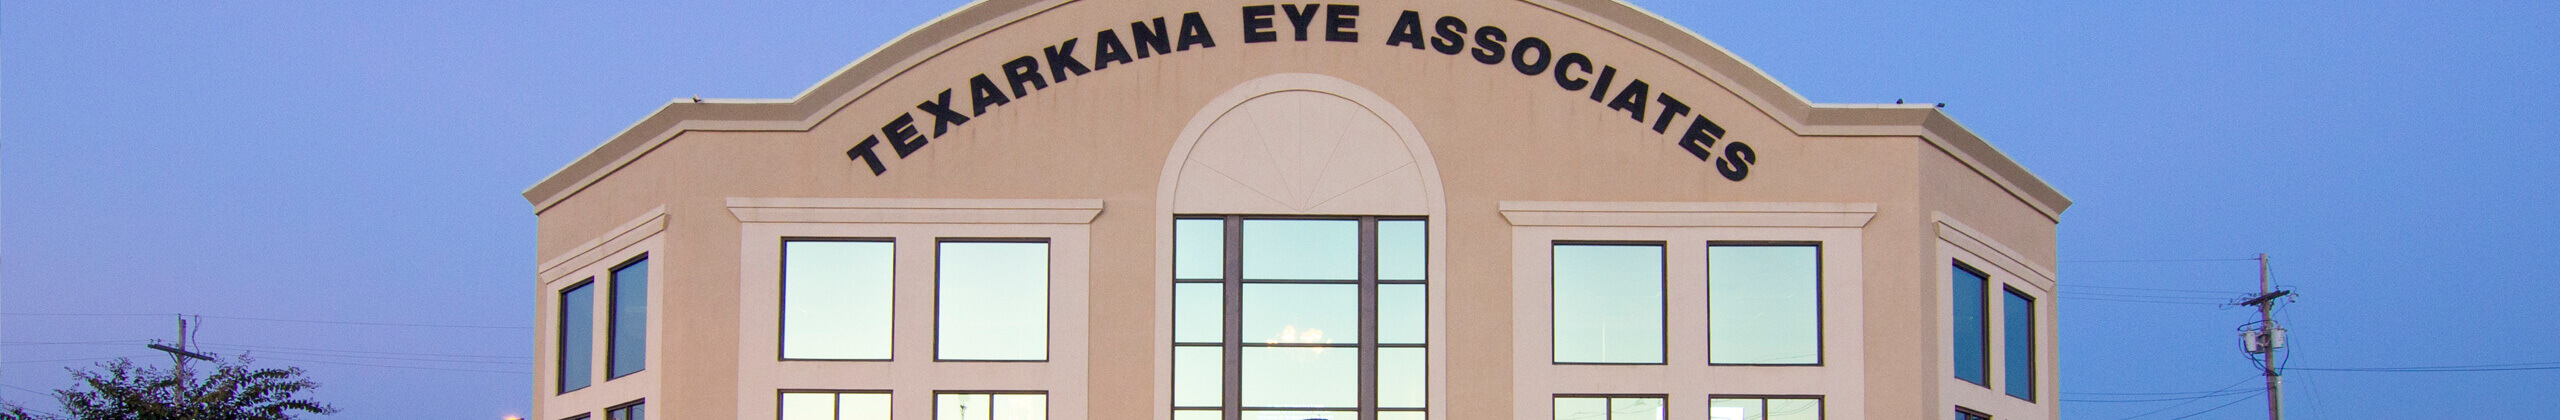 Texarkana Eye Associates Building